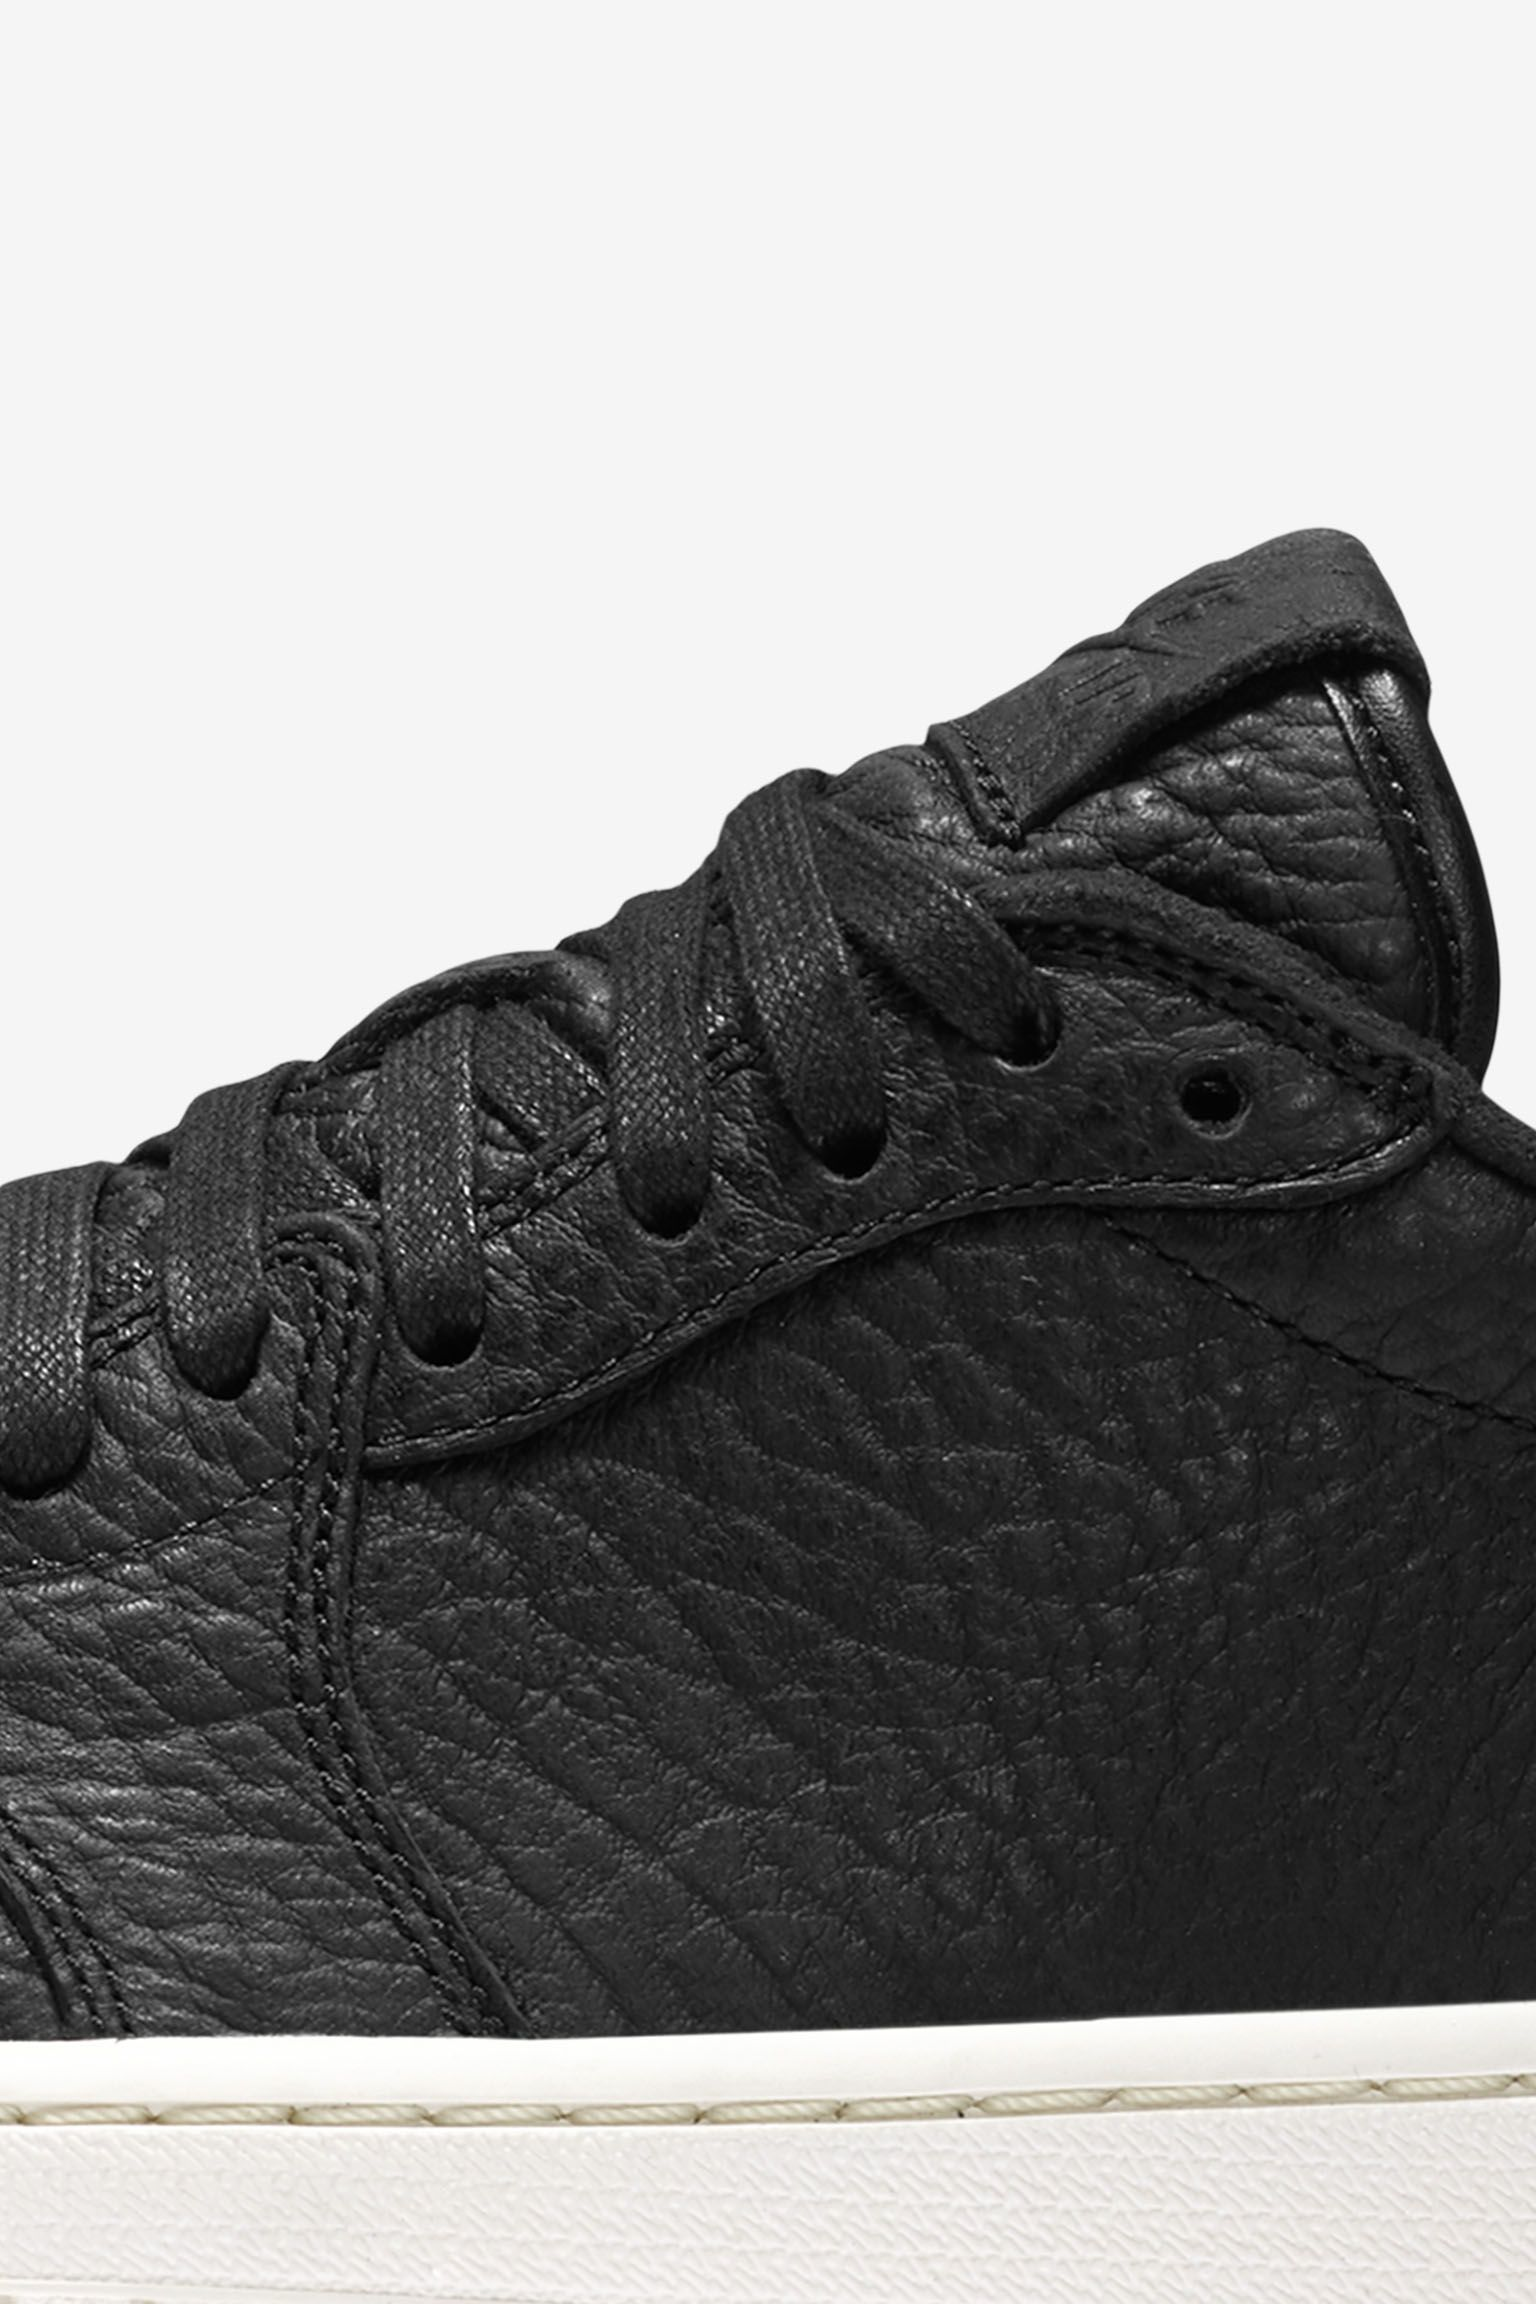 Air Jordan 1 Retro Low 'Swooshless All Year Appeal' Black Release Date